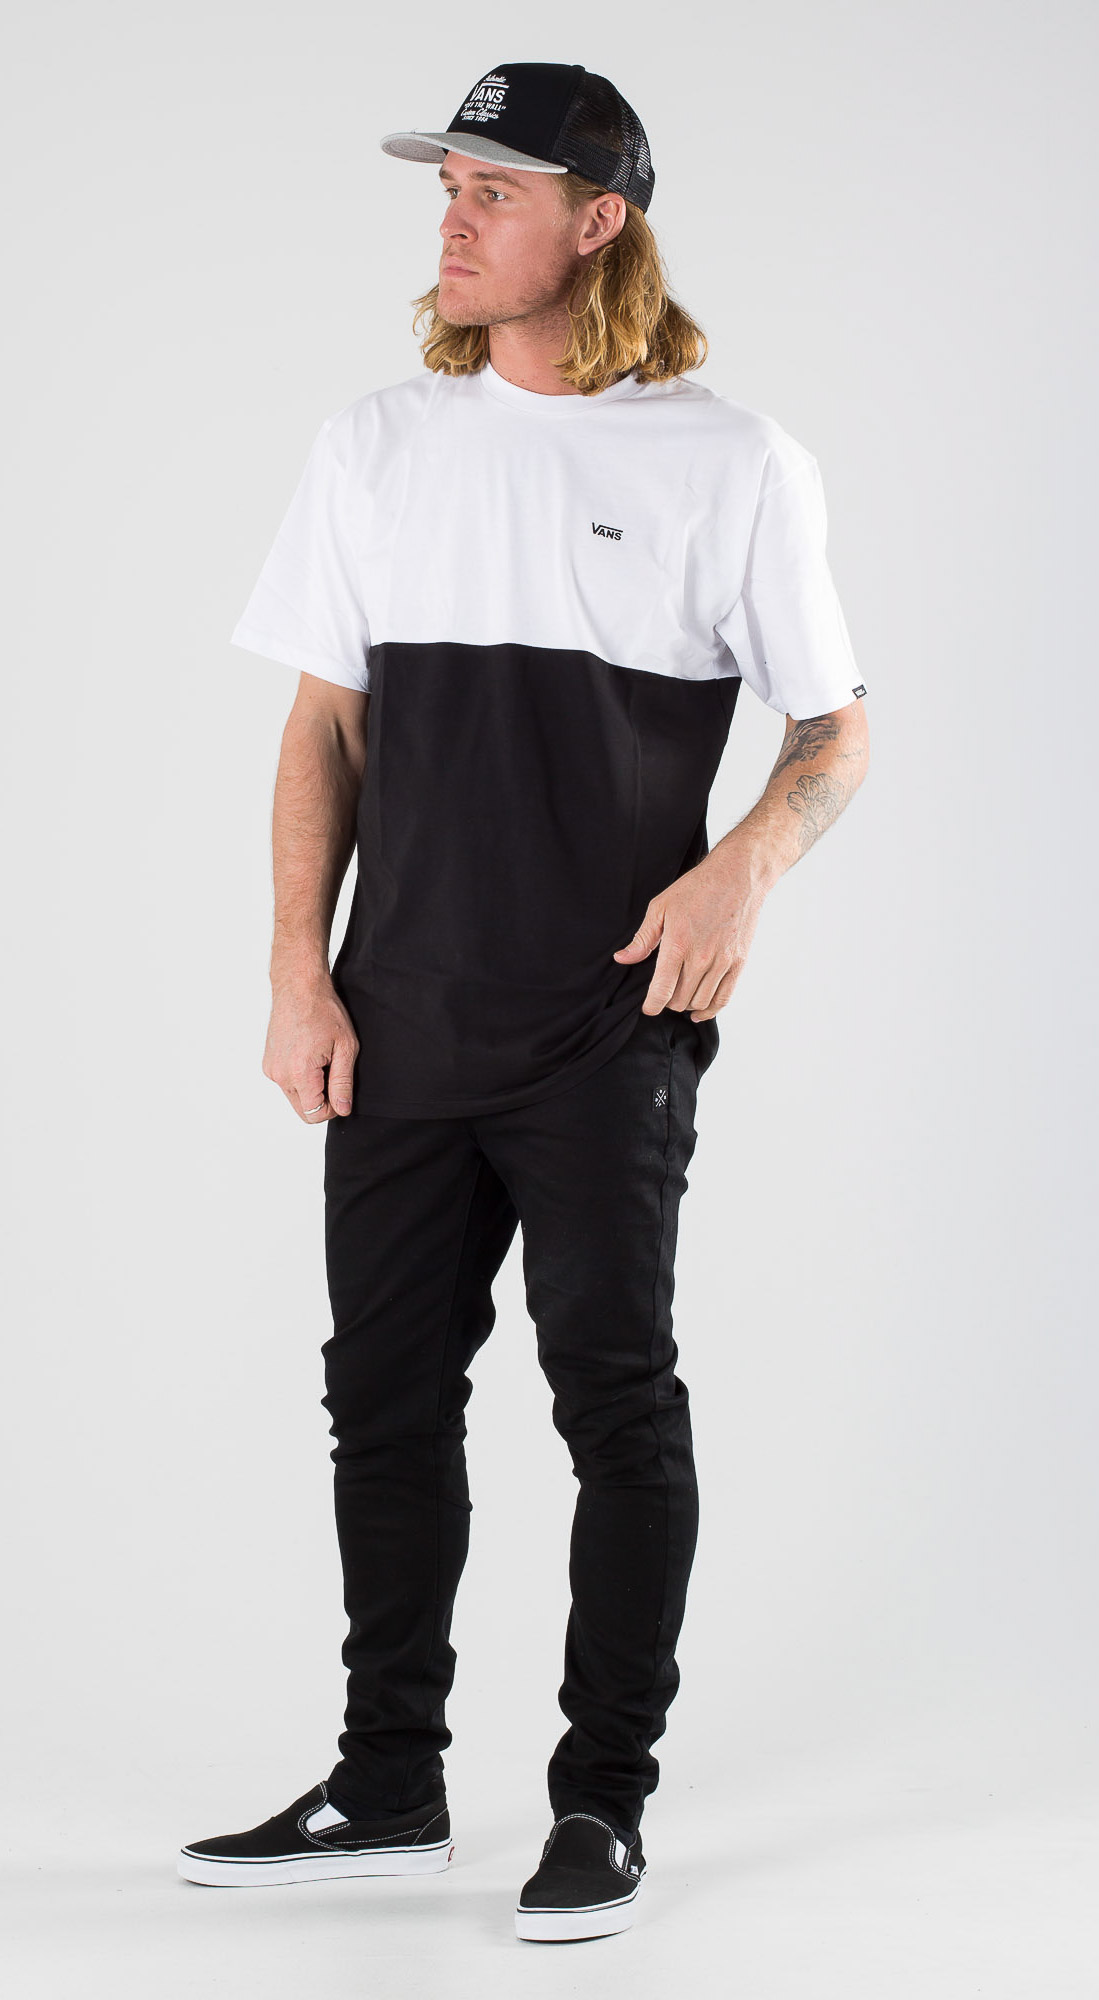 Vans Colorblock Tee Black White Outfit